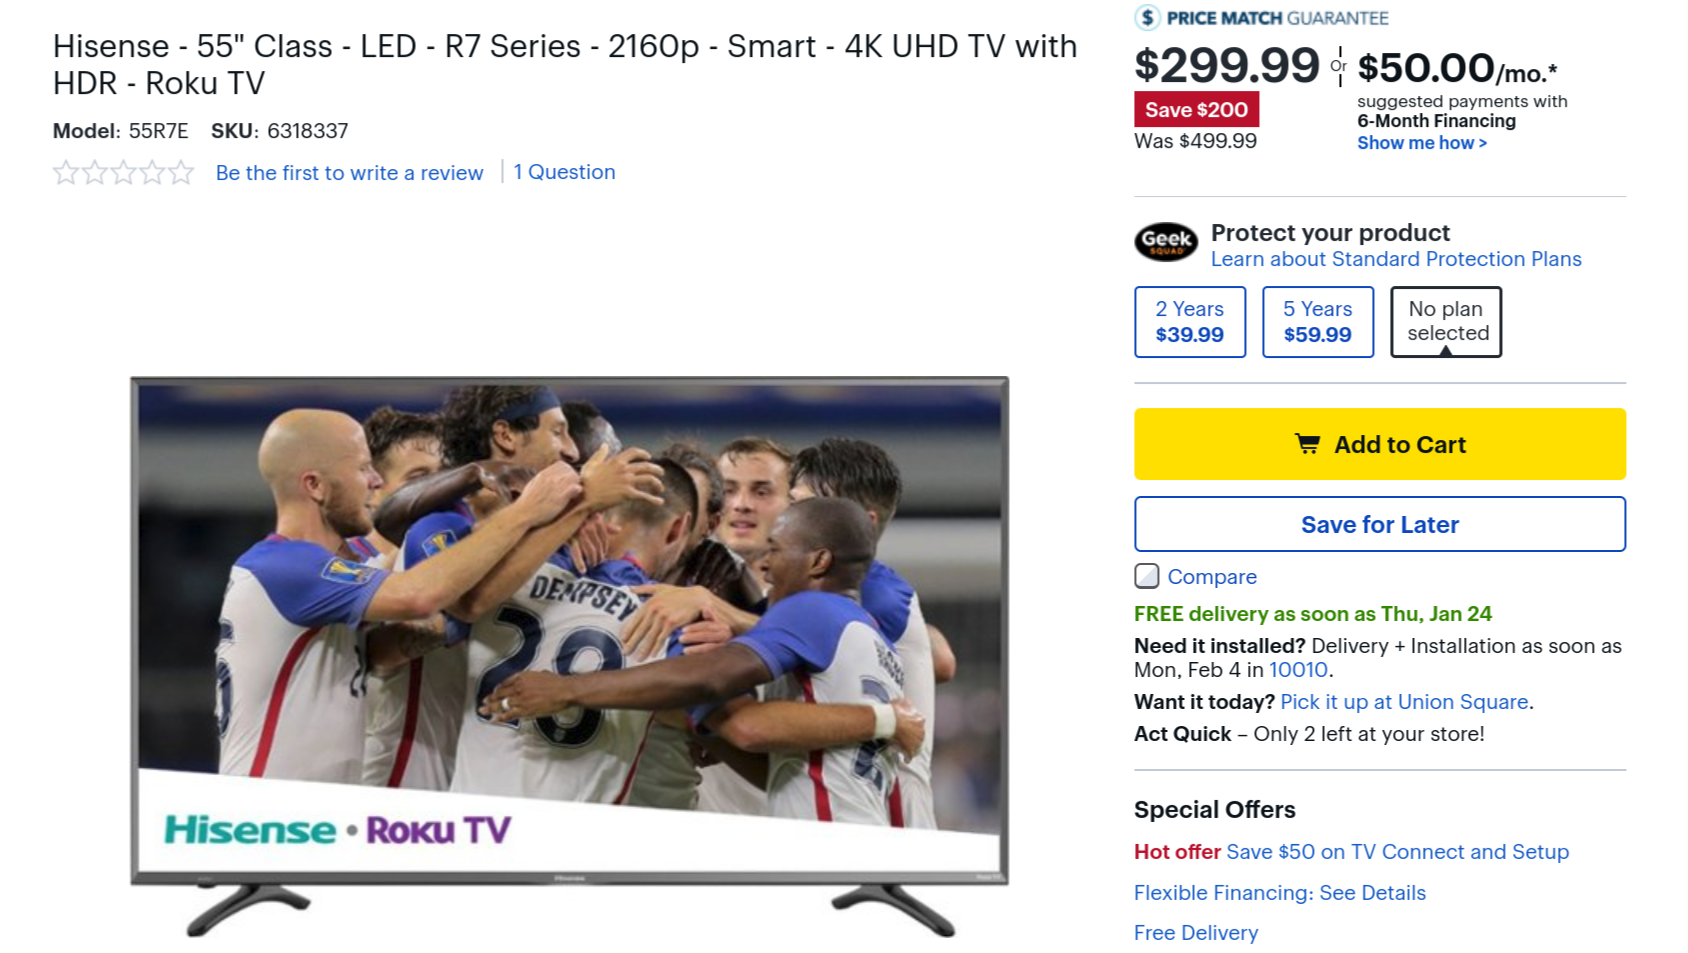 You can get a 55-inch Hisense 4K Roku TV for $300 ($200 off